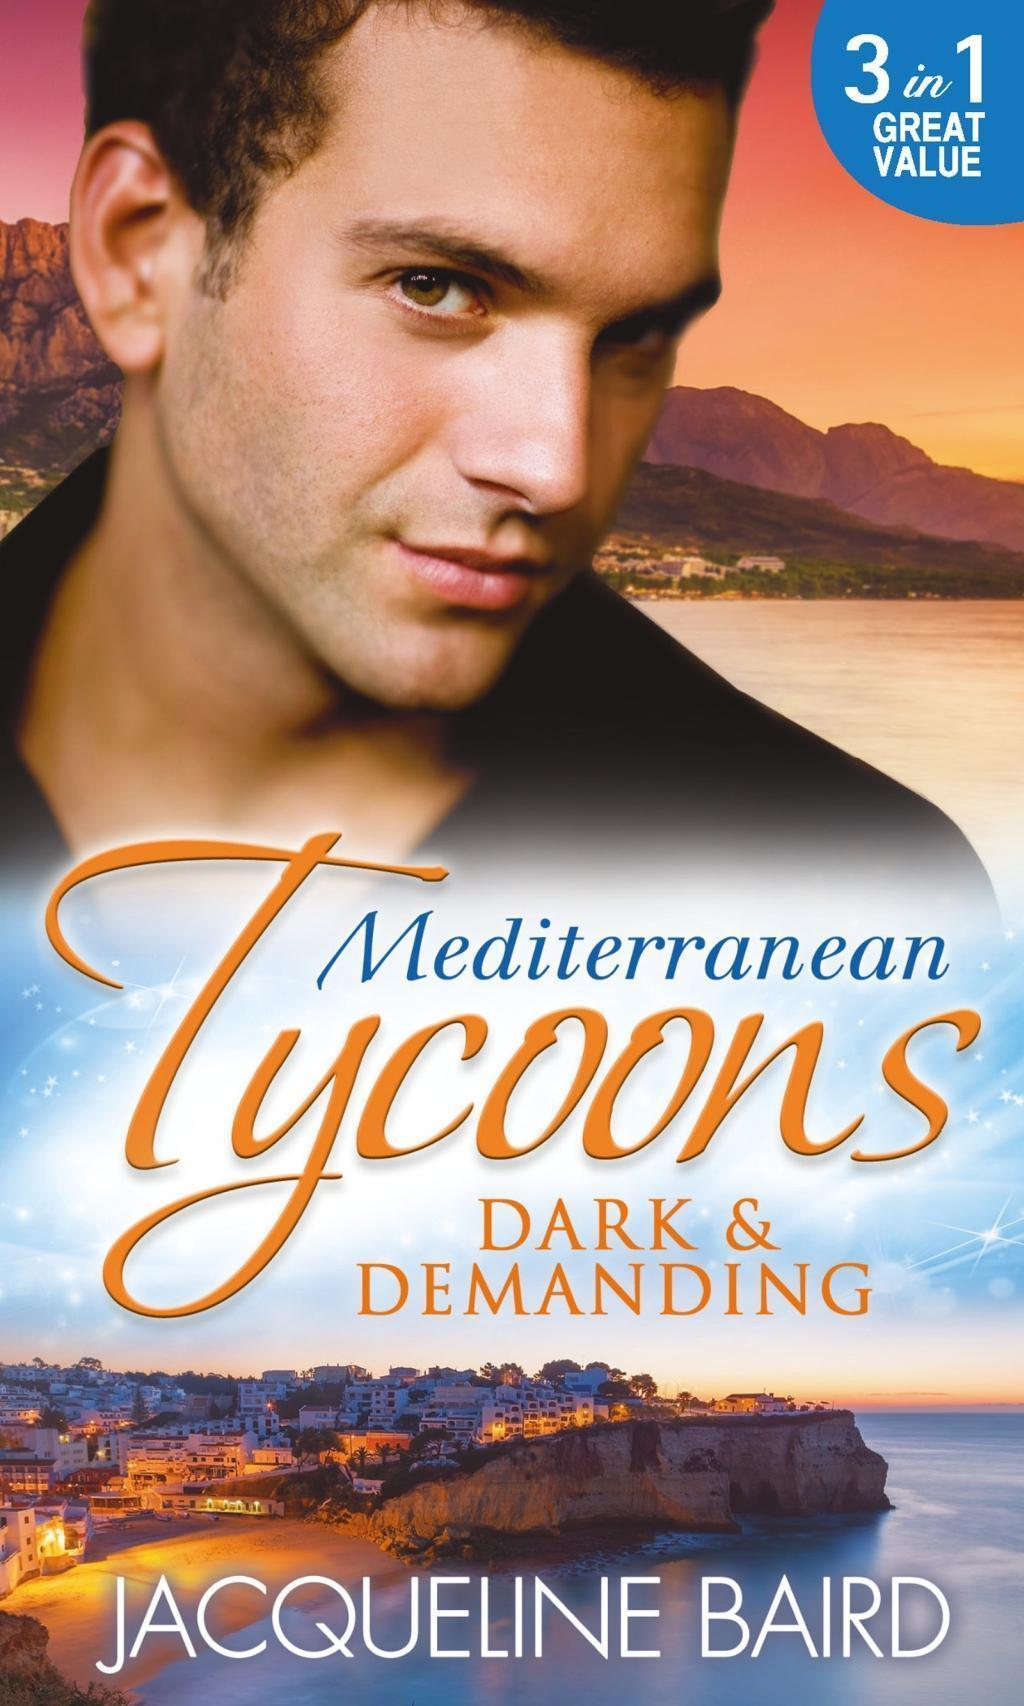 Mediterranean Tycoons: Dark & Demanding: At The Spaniard's Pleasure / A Most Passionate Revenge / The Italian Billionaire's Ruthless Revenge (Mills & Boon M&B)